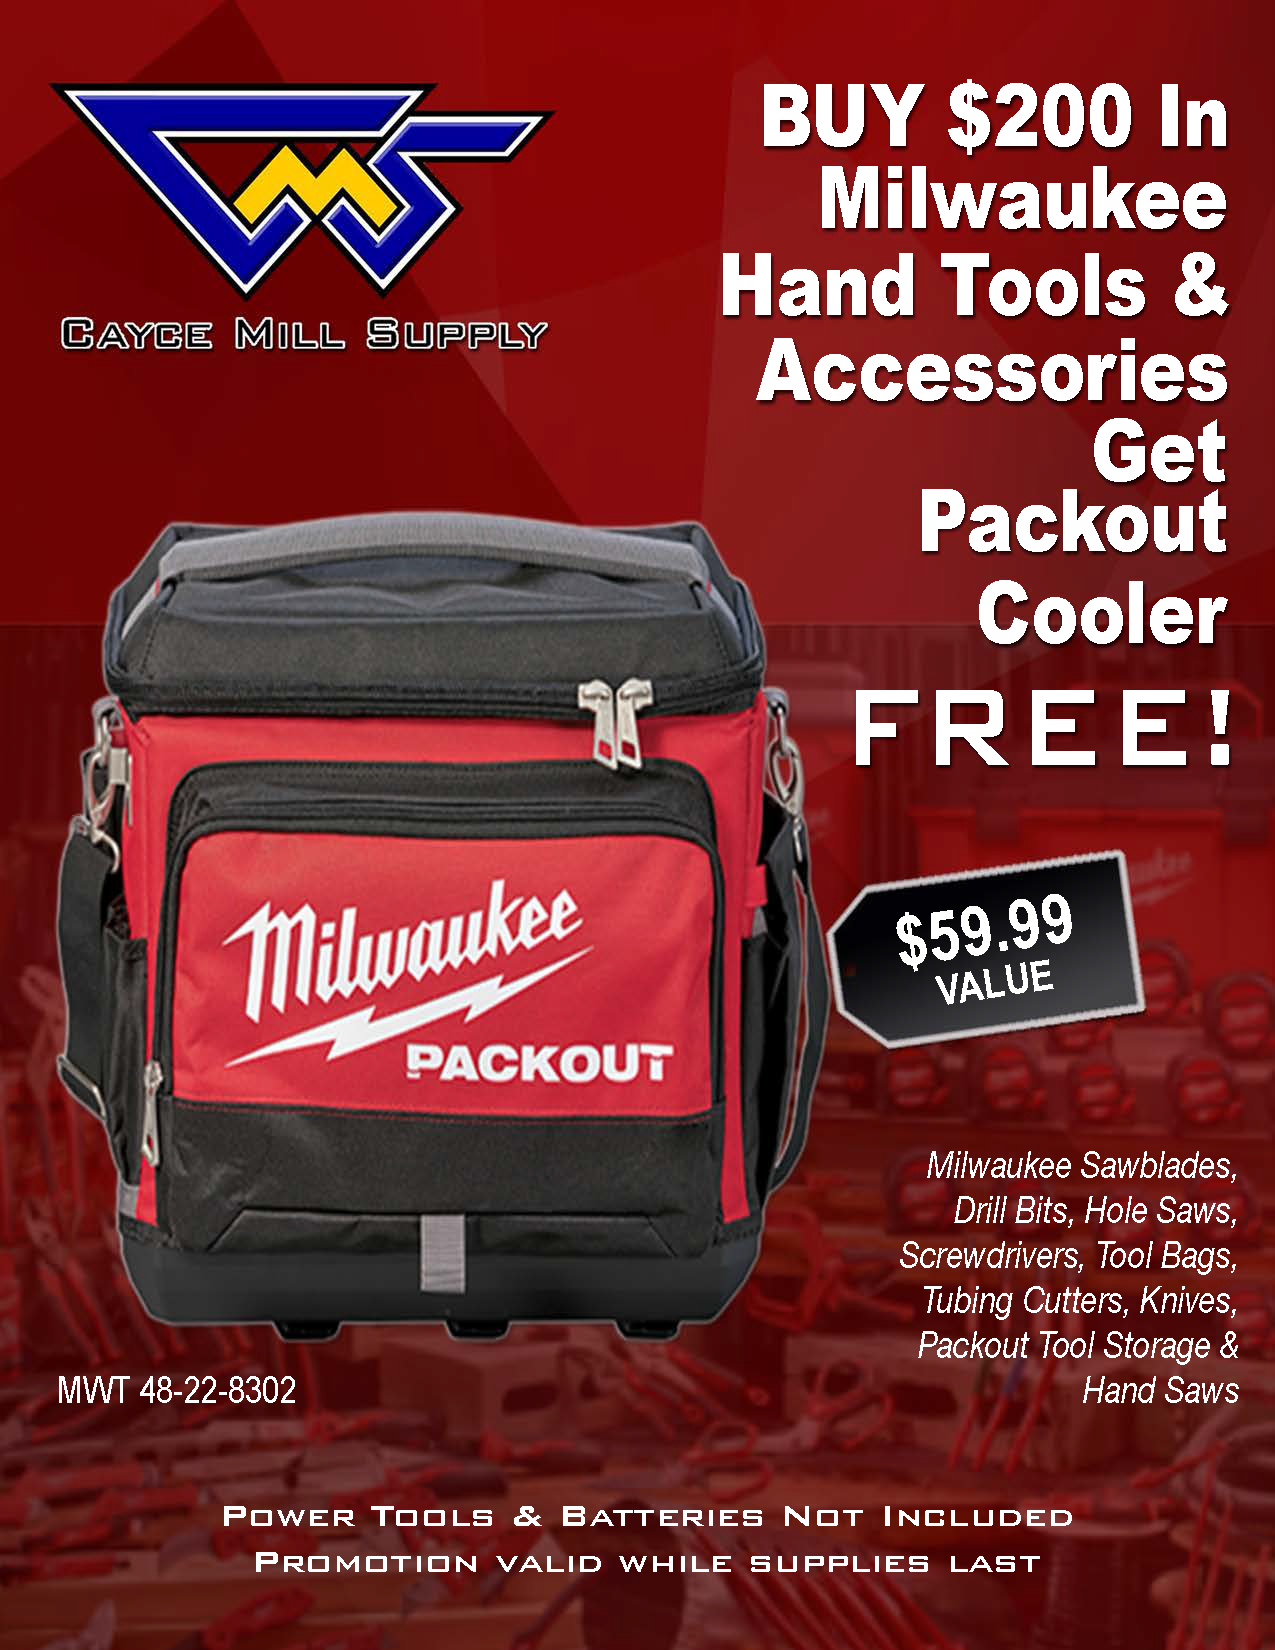 Milwaukee Tool Packout Cooler Promo